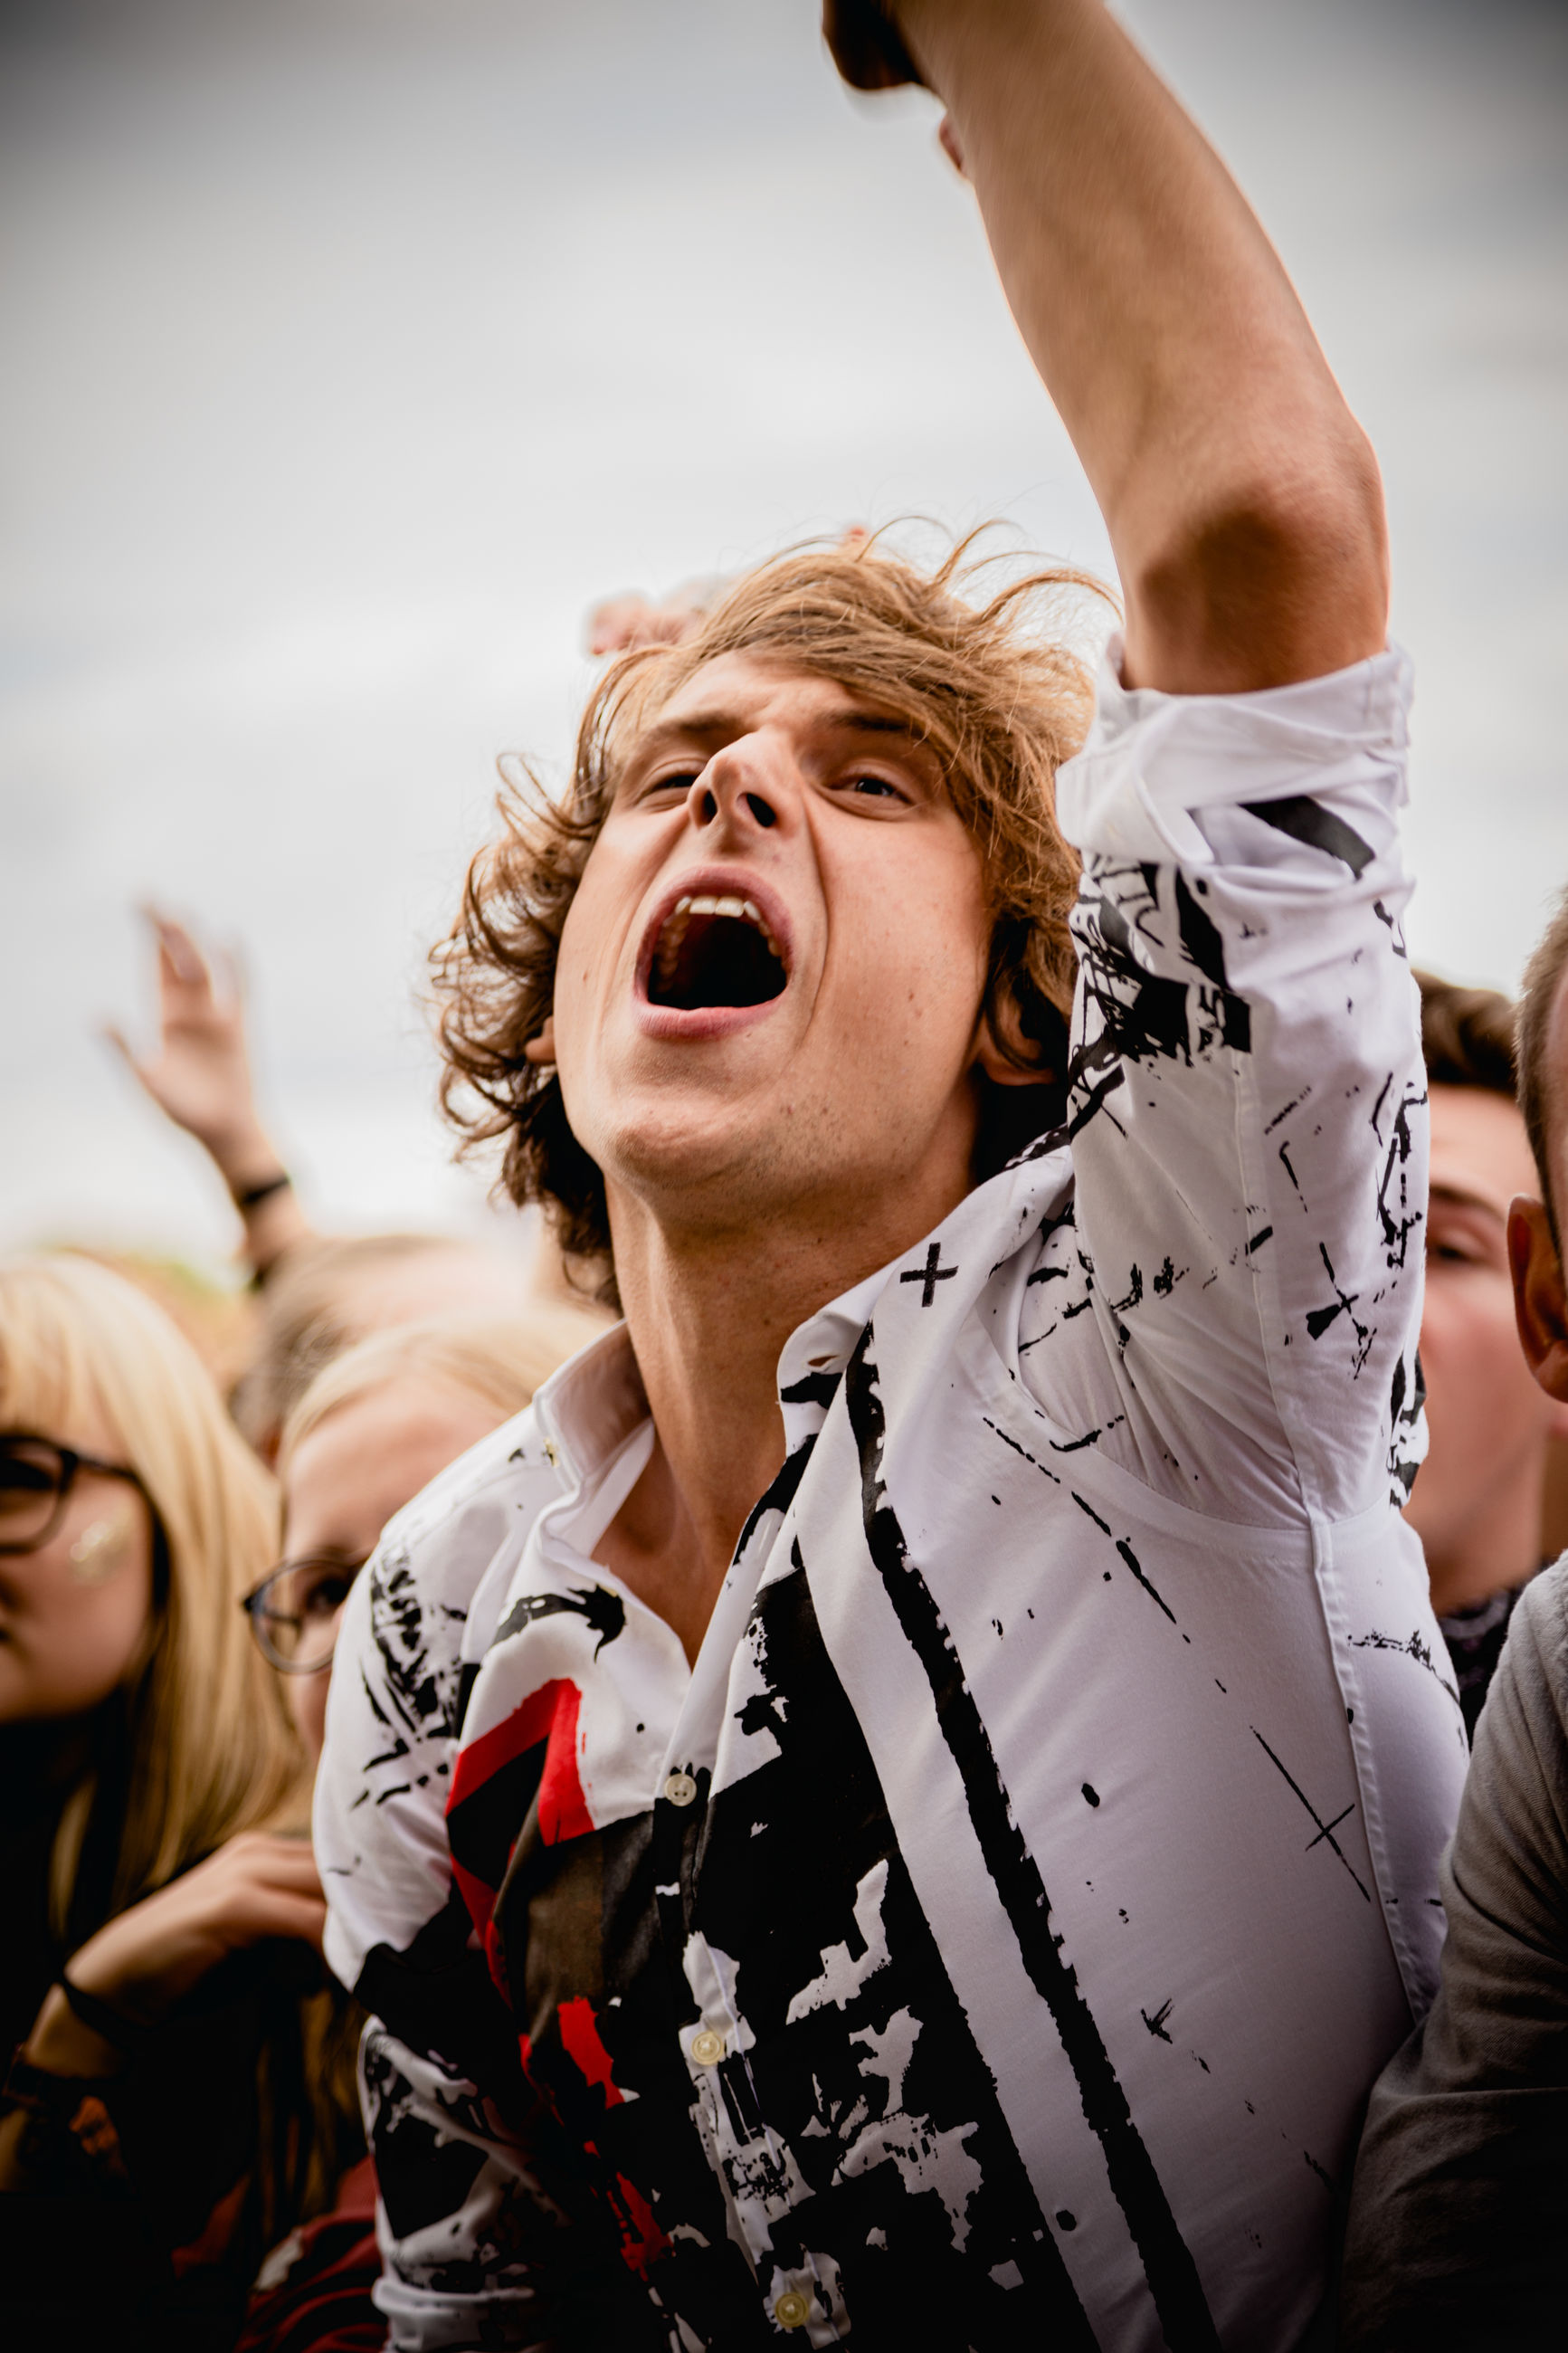 real people, lifestyles, leisure activity, emotion, mouth open, mouth, young adult, incidental people, shouting, happiness, people, front view, young men, event, focus on foreground, enjoyment, young women, looking, human arm, excitement, arms raised, hairstyle